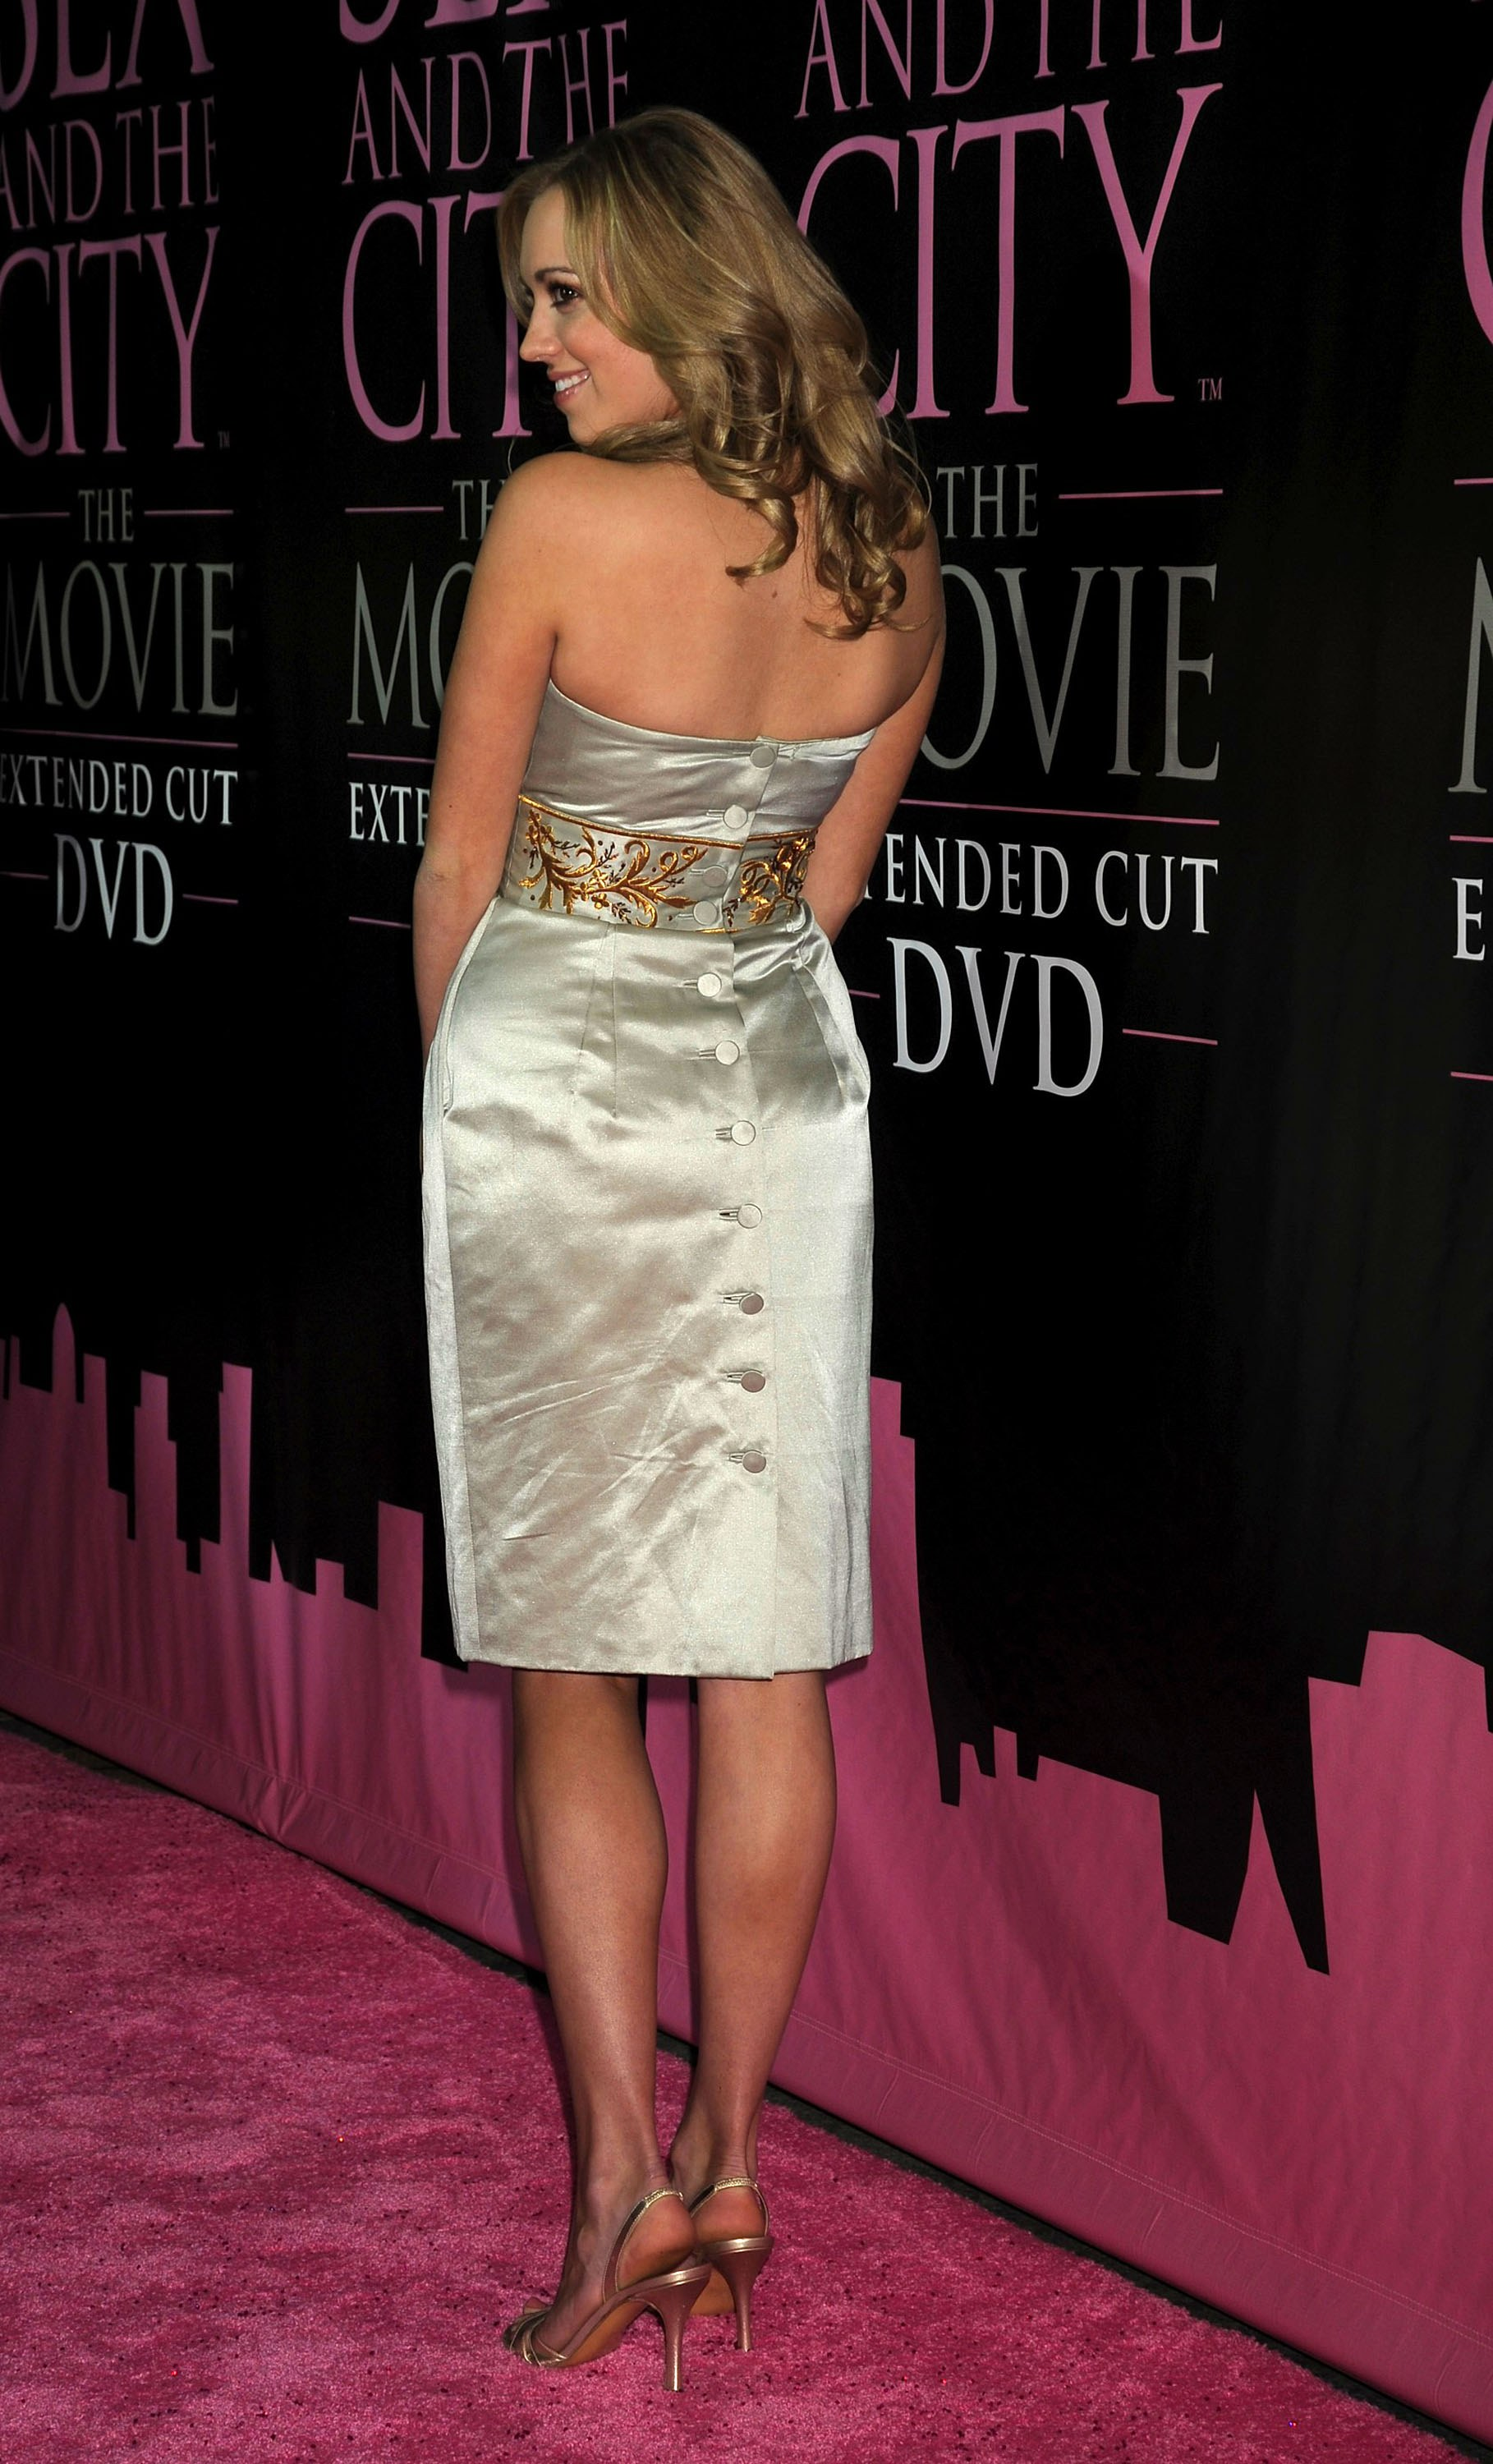 26833_Andrea_Bowen_-_36Sex_and_the_City-_The_Movie45_DVD_launch_CU_ISA_0014_122_1070lo.jpg